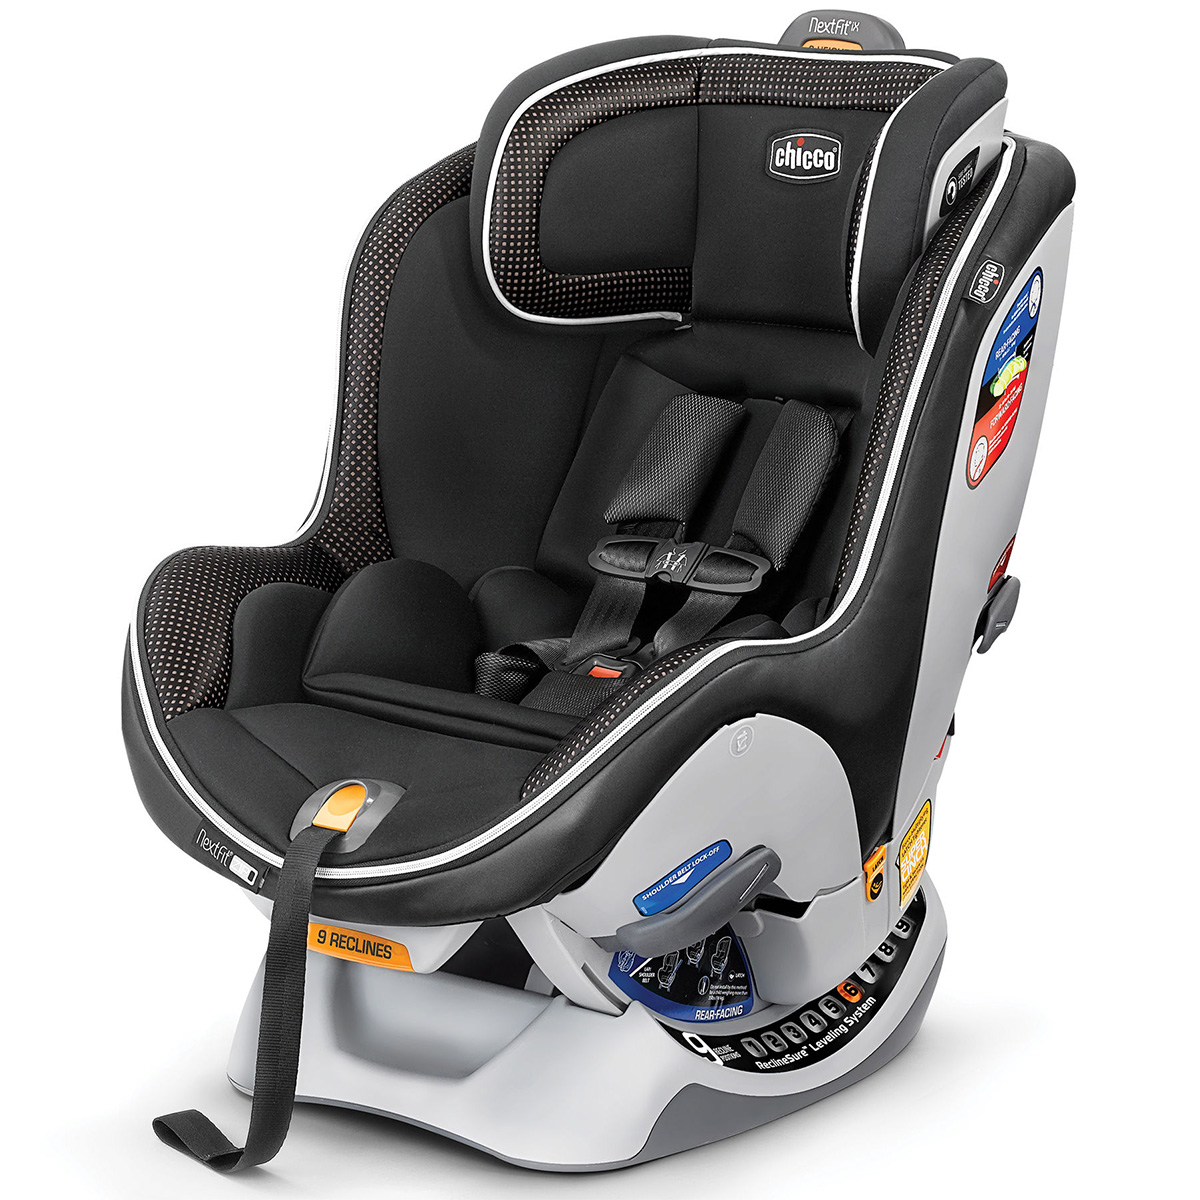 Chicco NextFit IX Zip LUXE Convertible Car Seat 2017